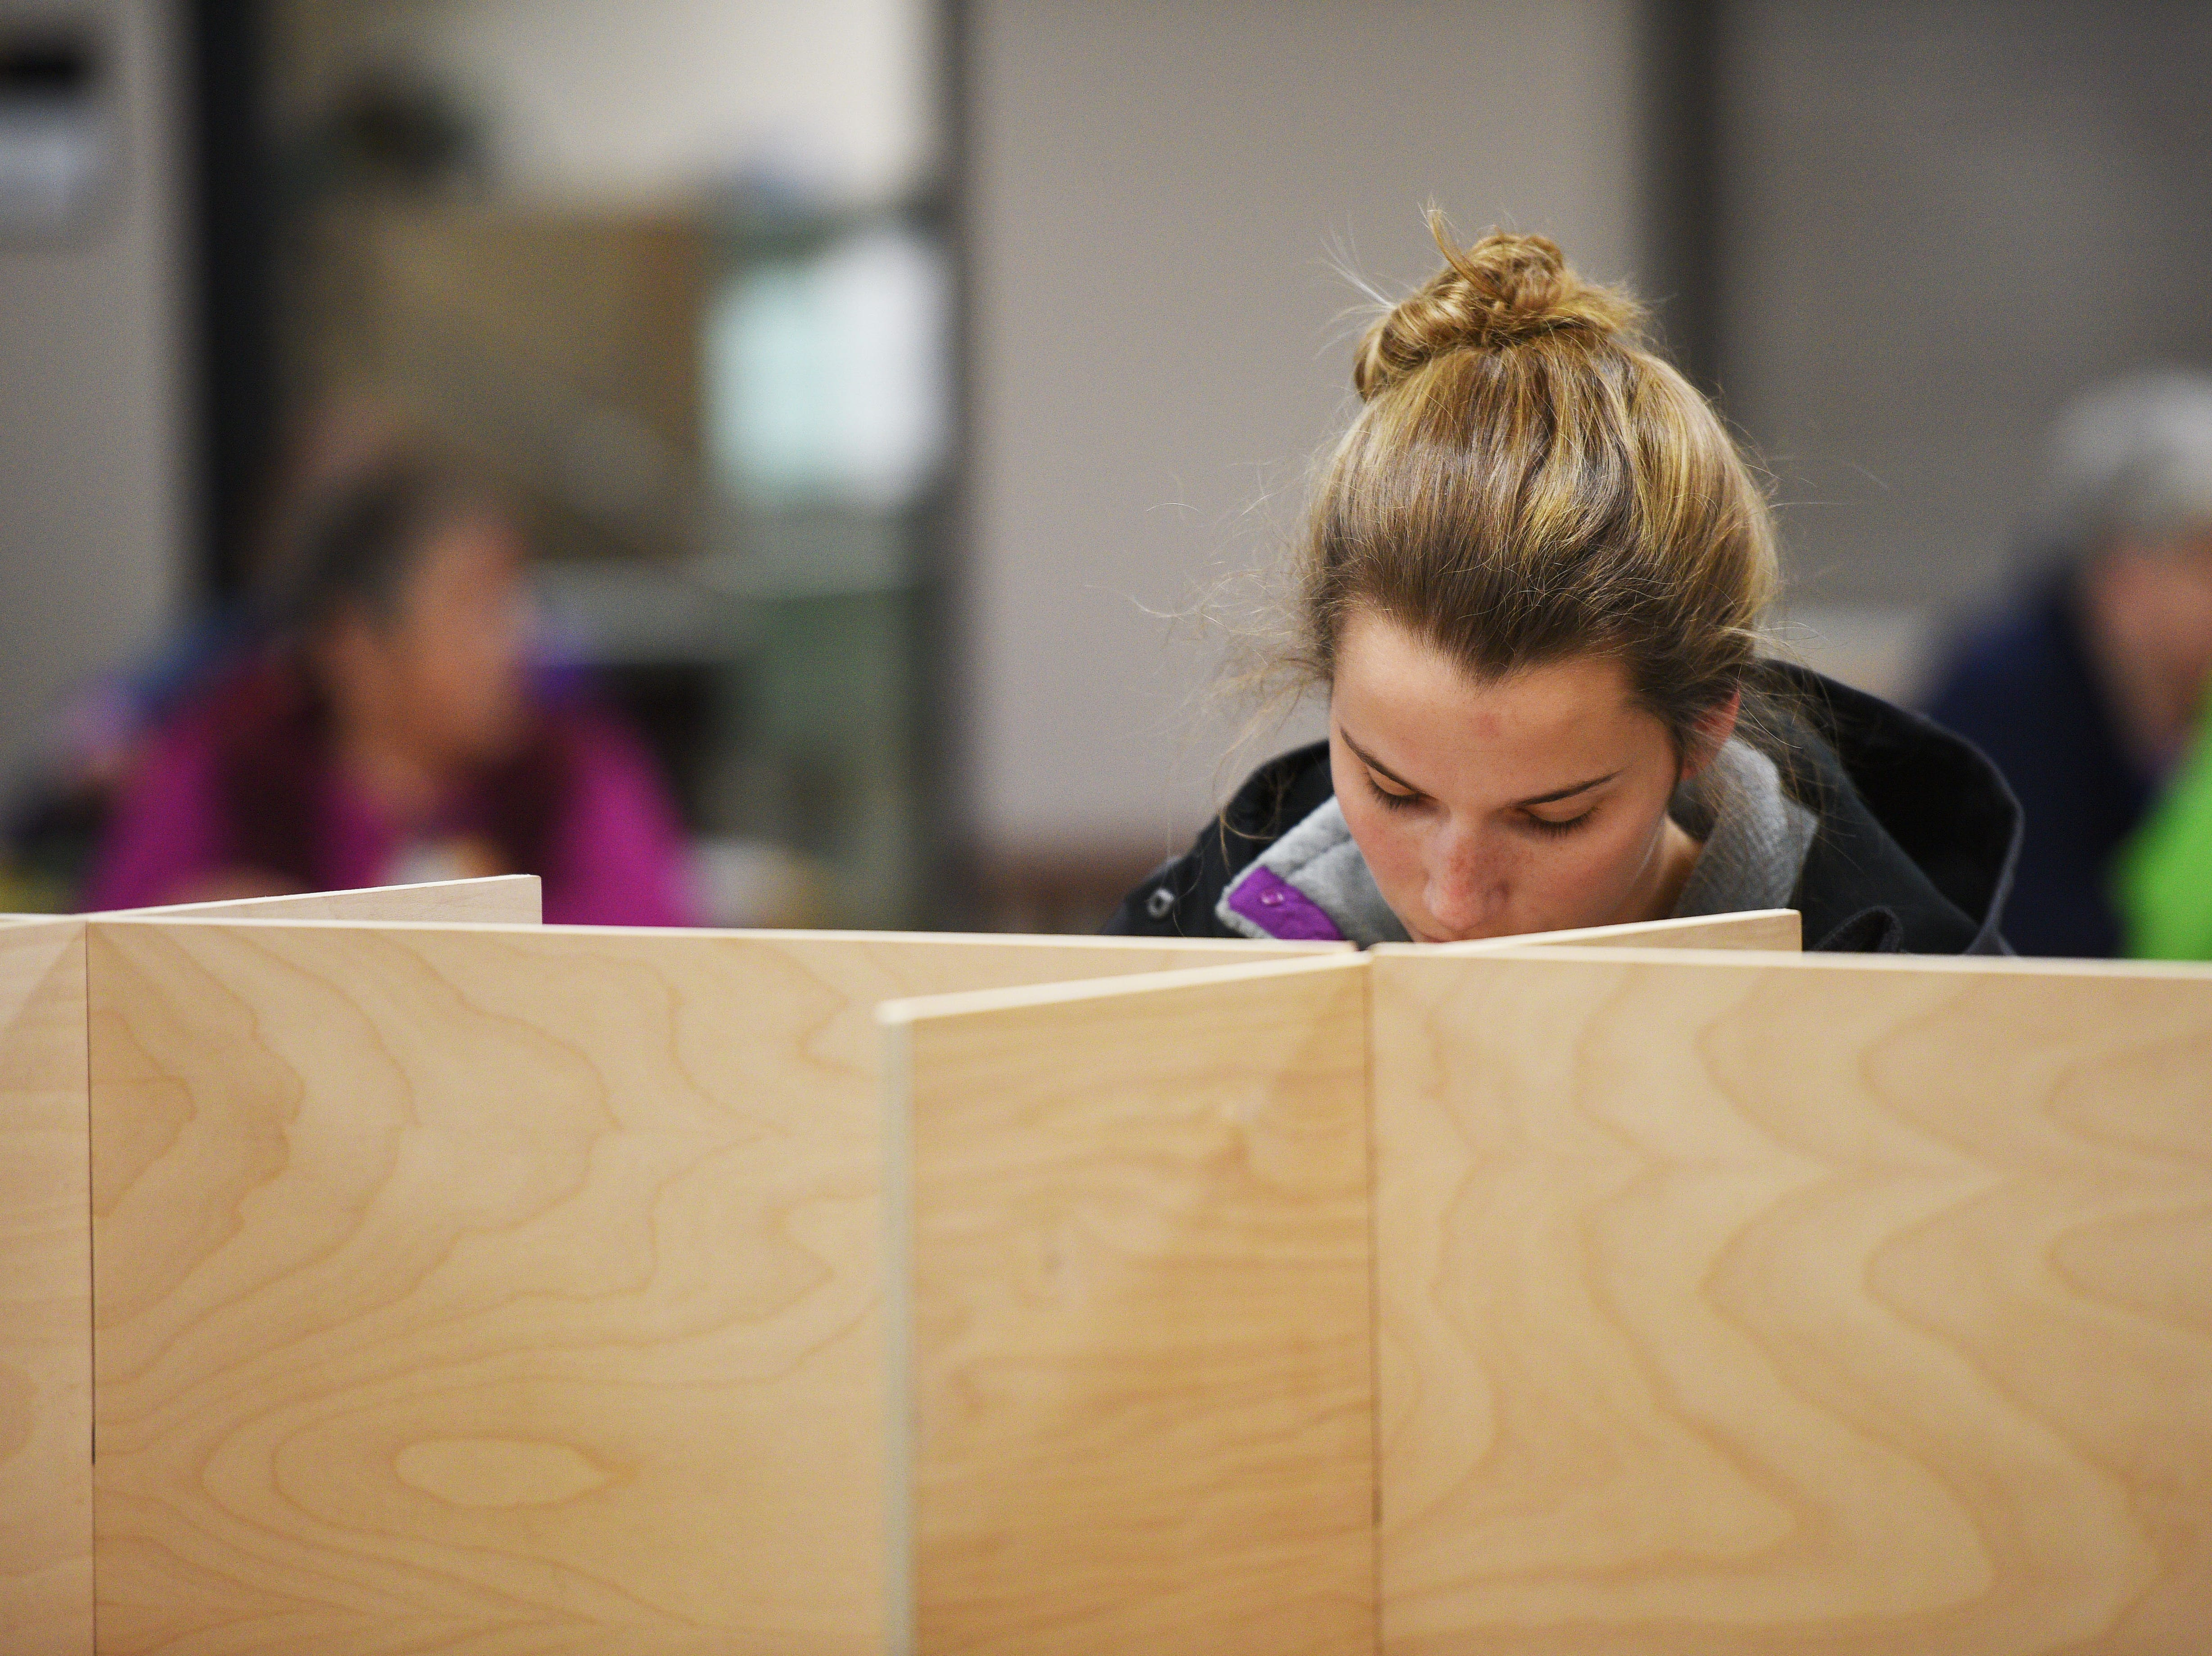 Maria Harrington votes in the 2018 midterm elections Tuesday, Nov. 6, at First Lutheran Church in Sioux Falls.